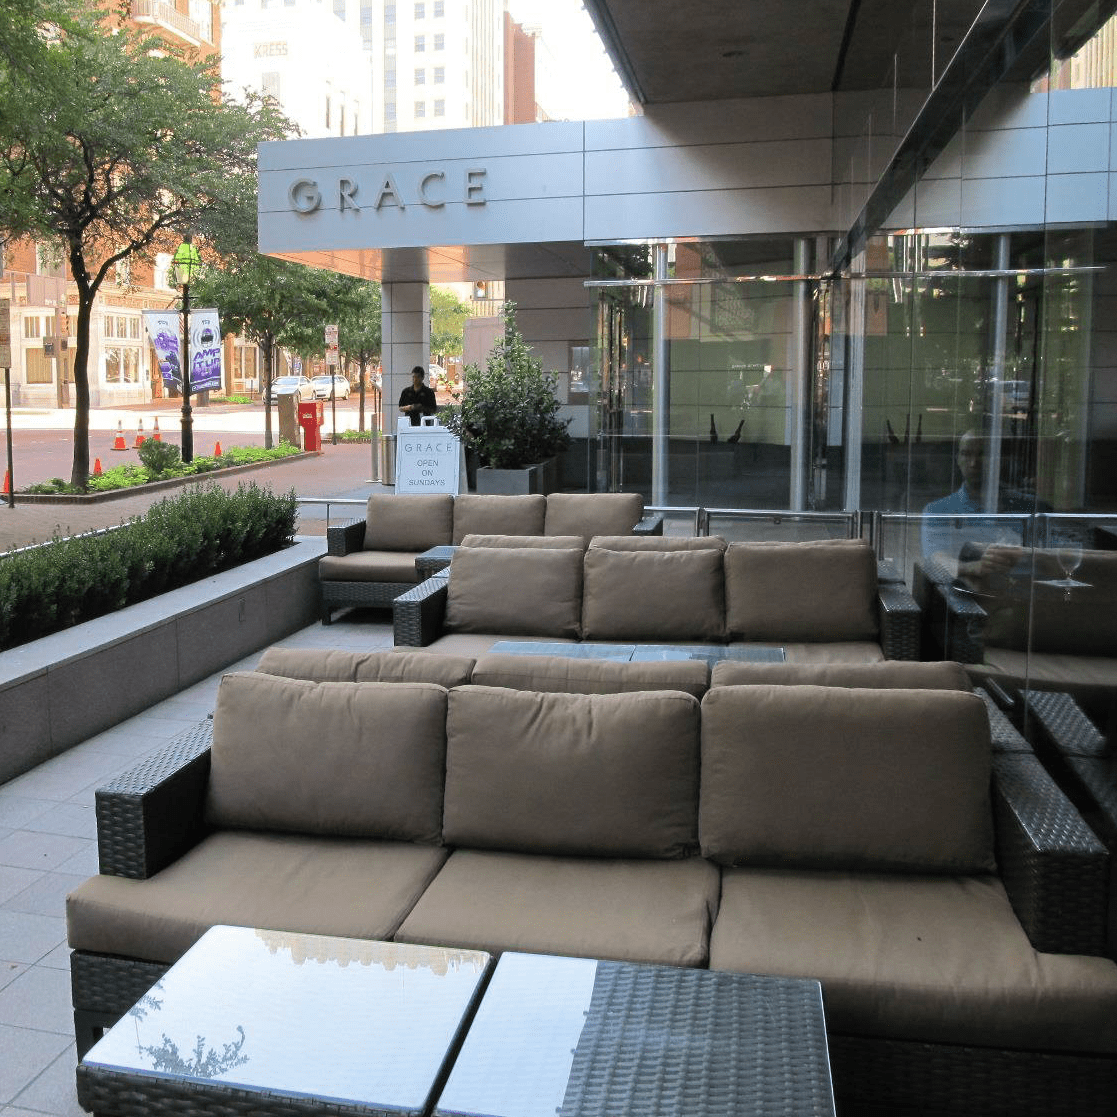 Grace restaurant patio in Fort Worth